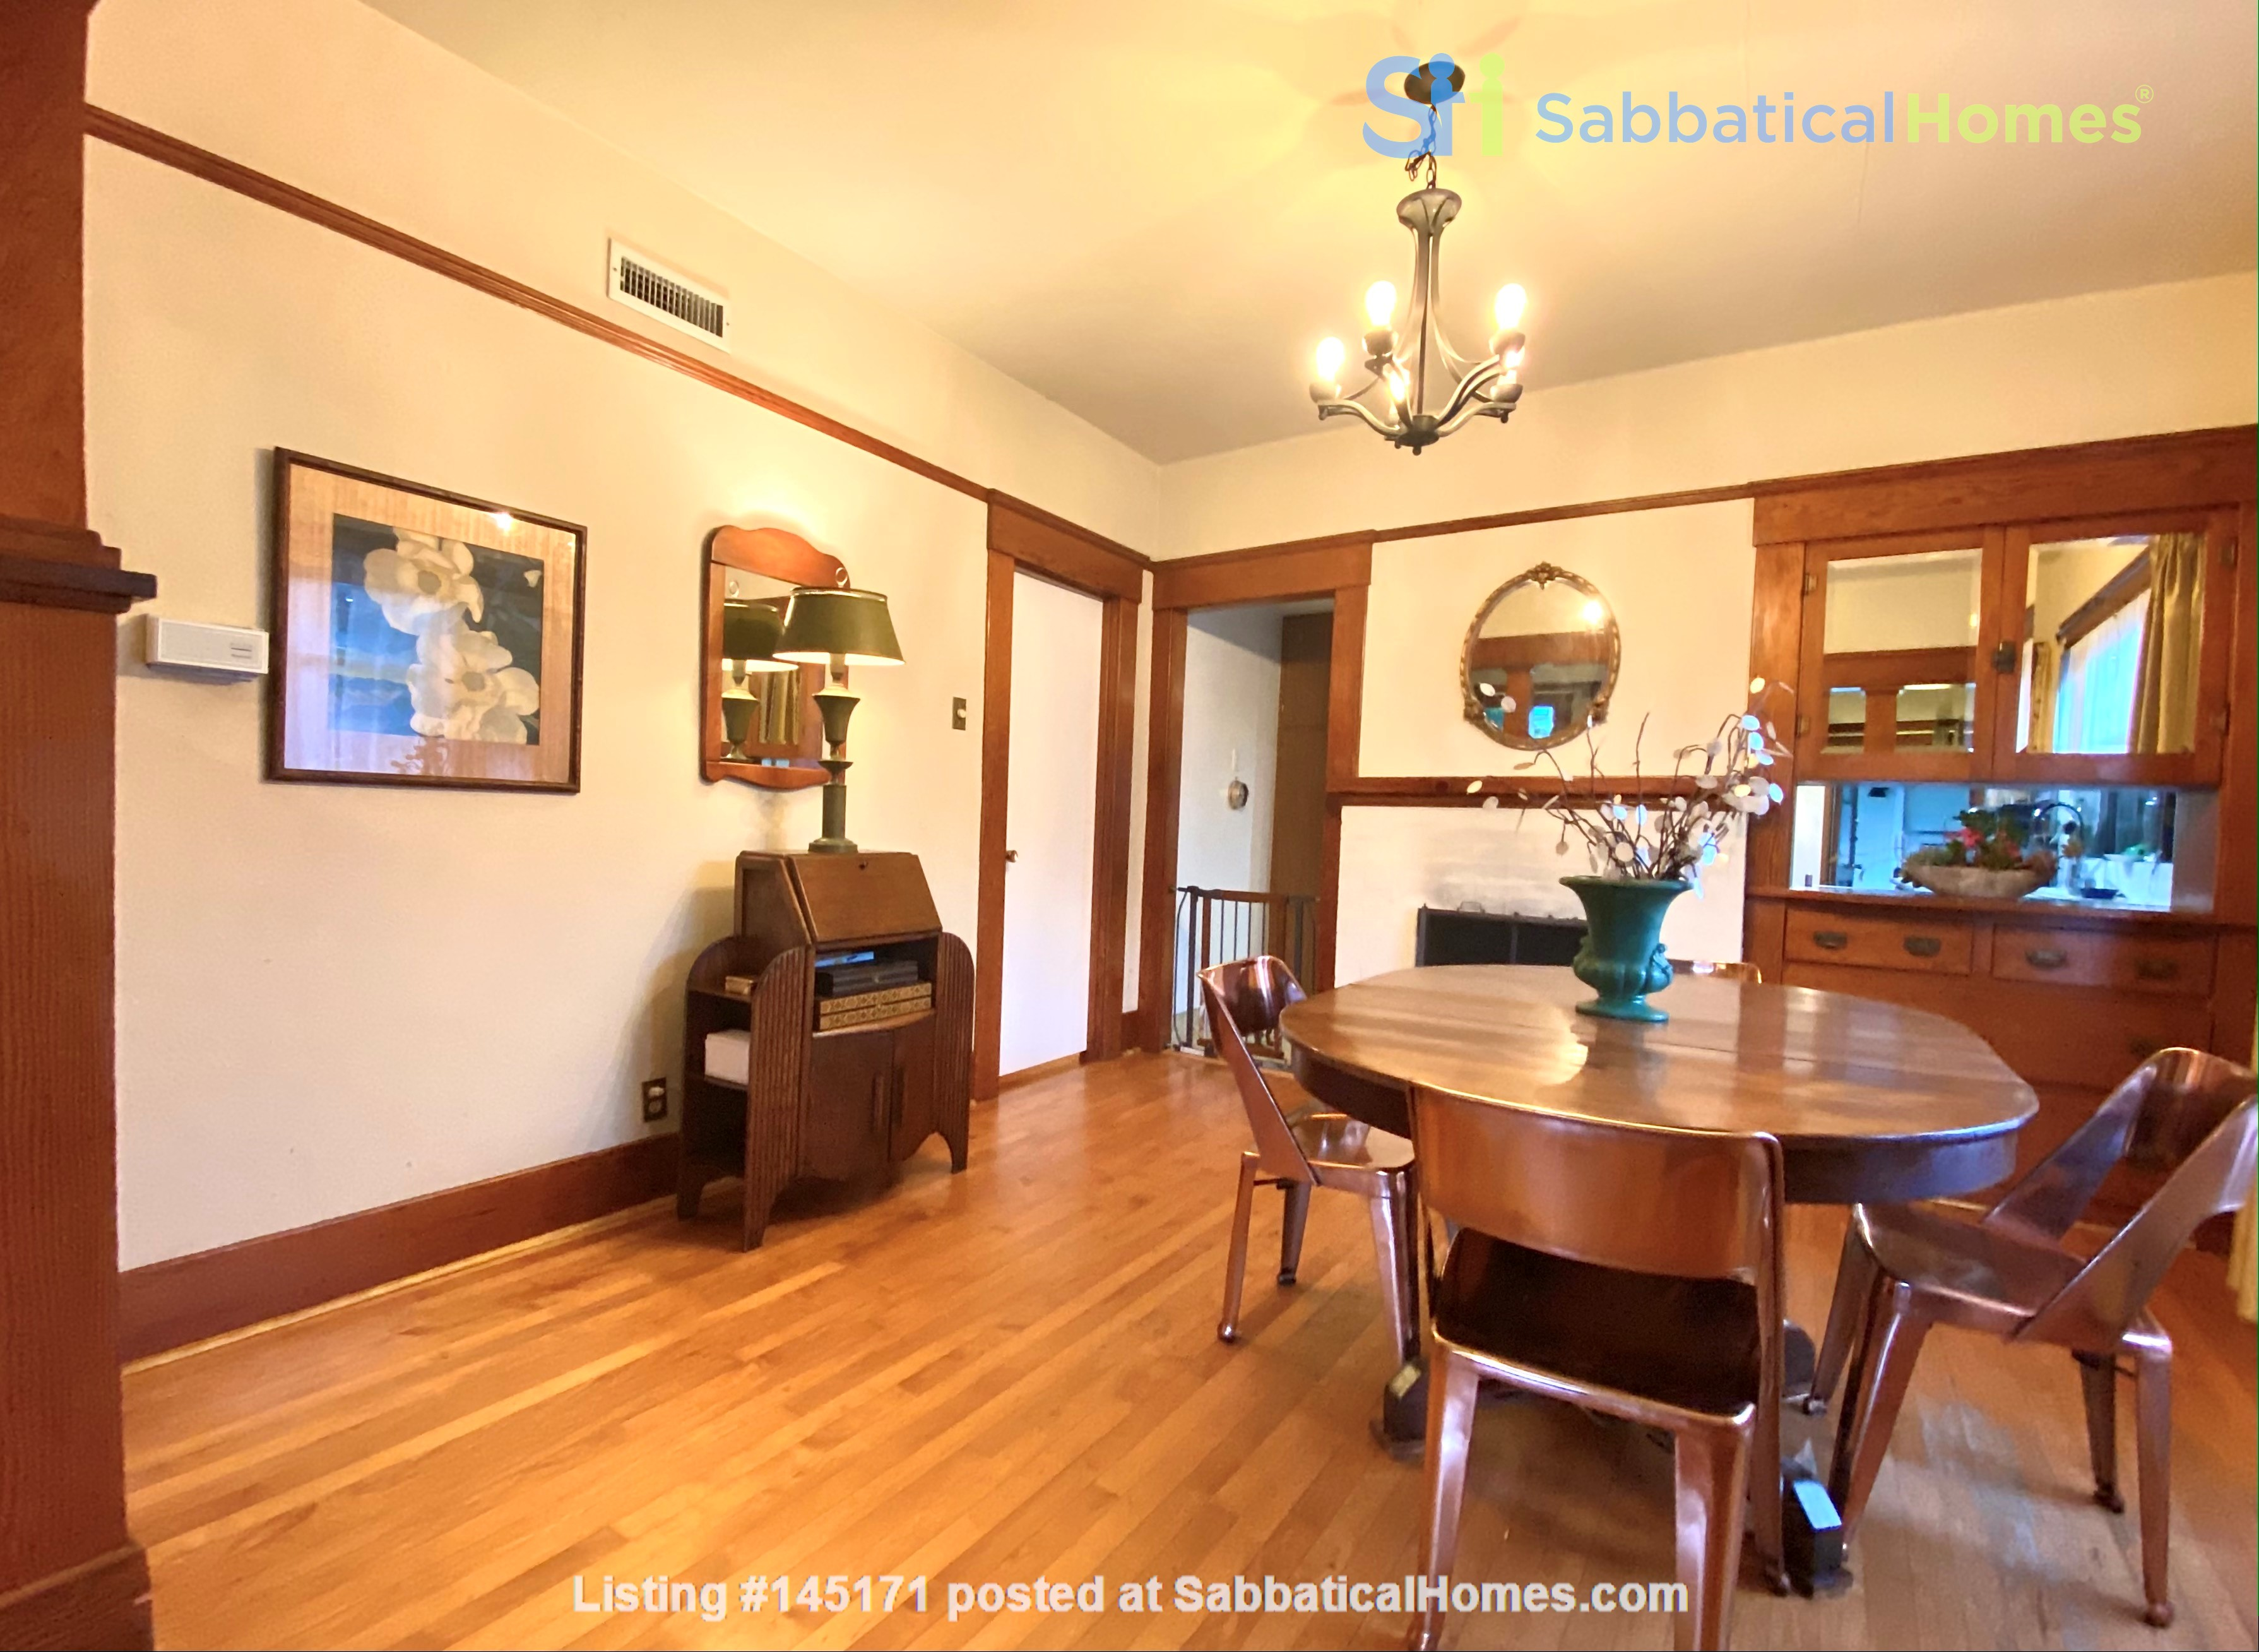 Lovely Craftsman home in historic neighborhood near beaches and downtown! Home Rental in San Diego, California, United States 4